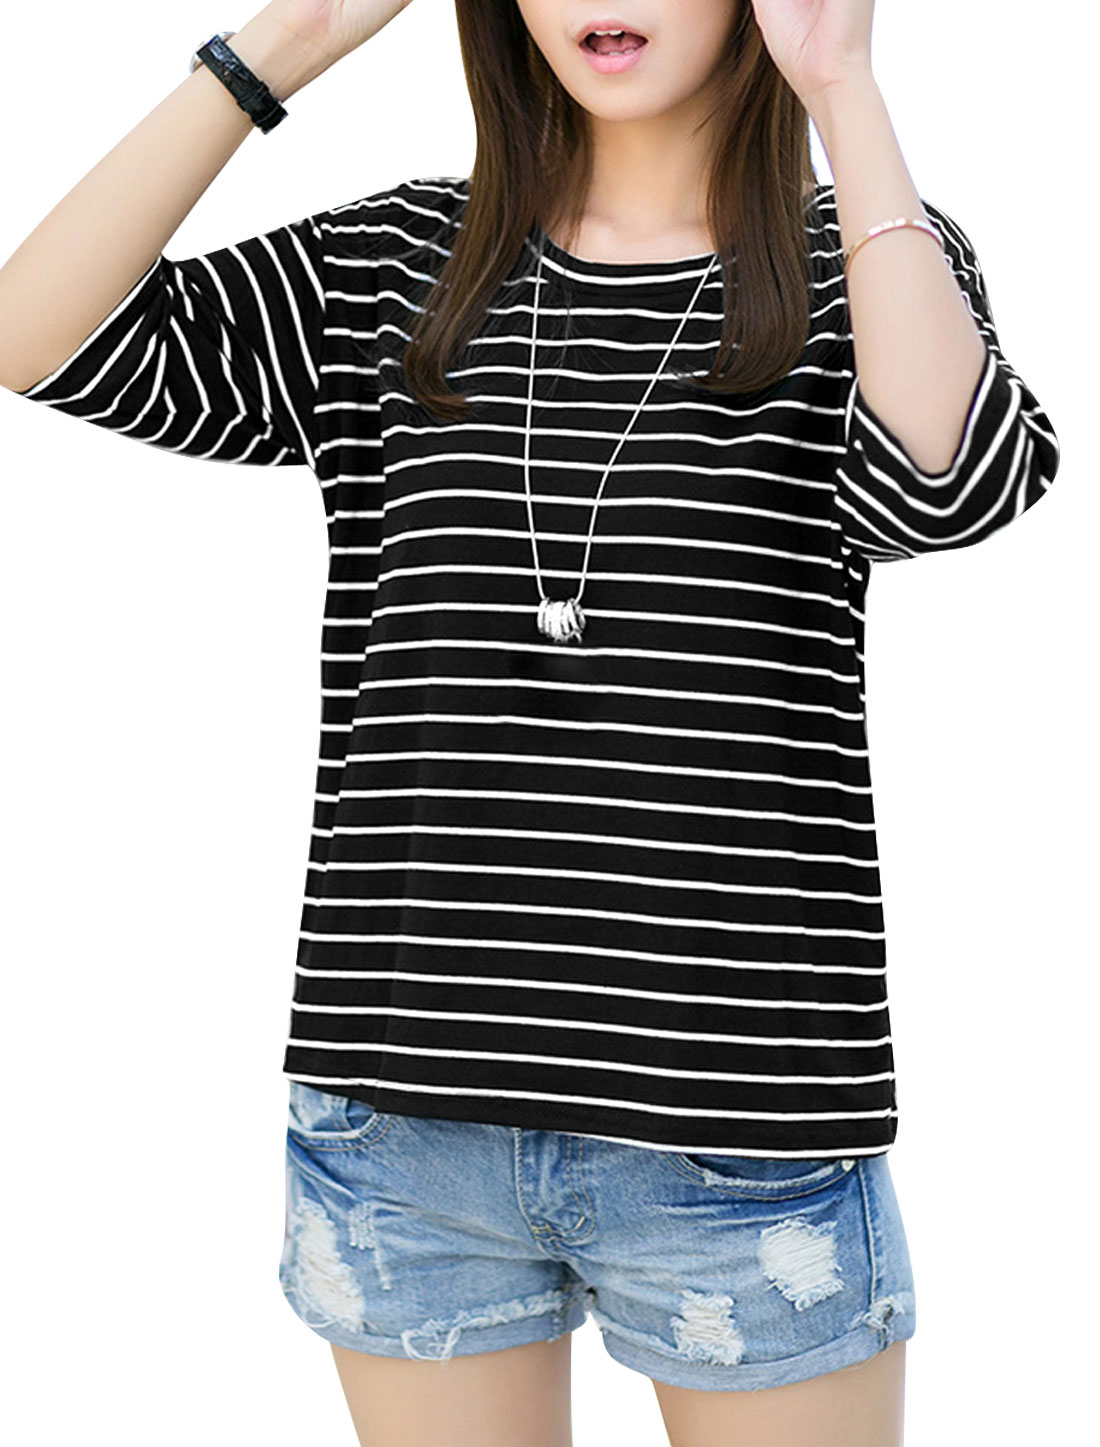 Lady Stripes Round Neck Batwing Elbow Sleeve Slipover T-Shirt Black XS